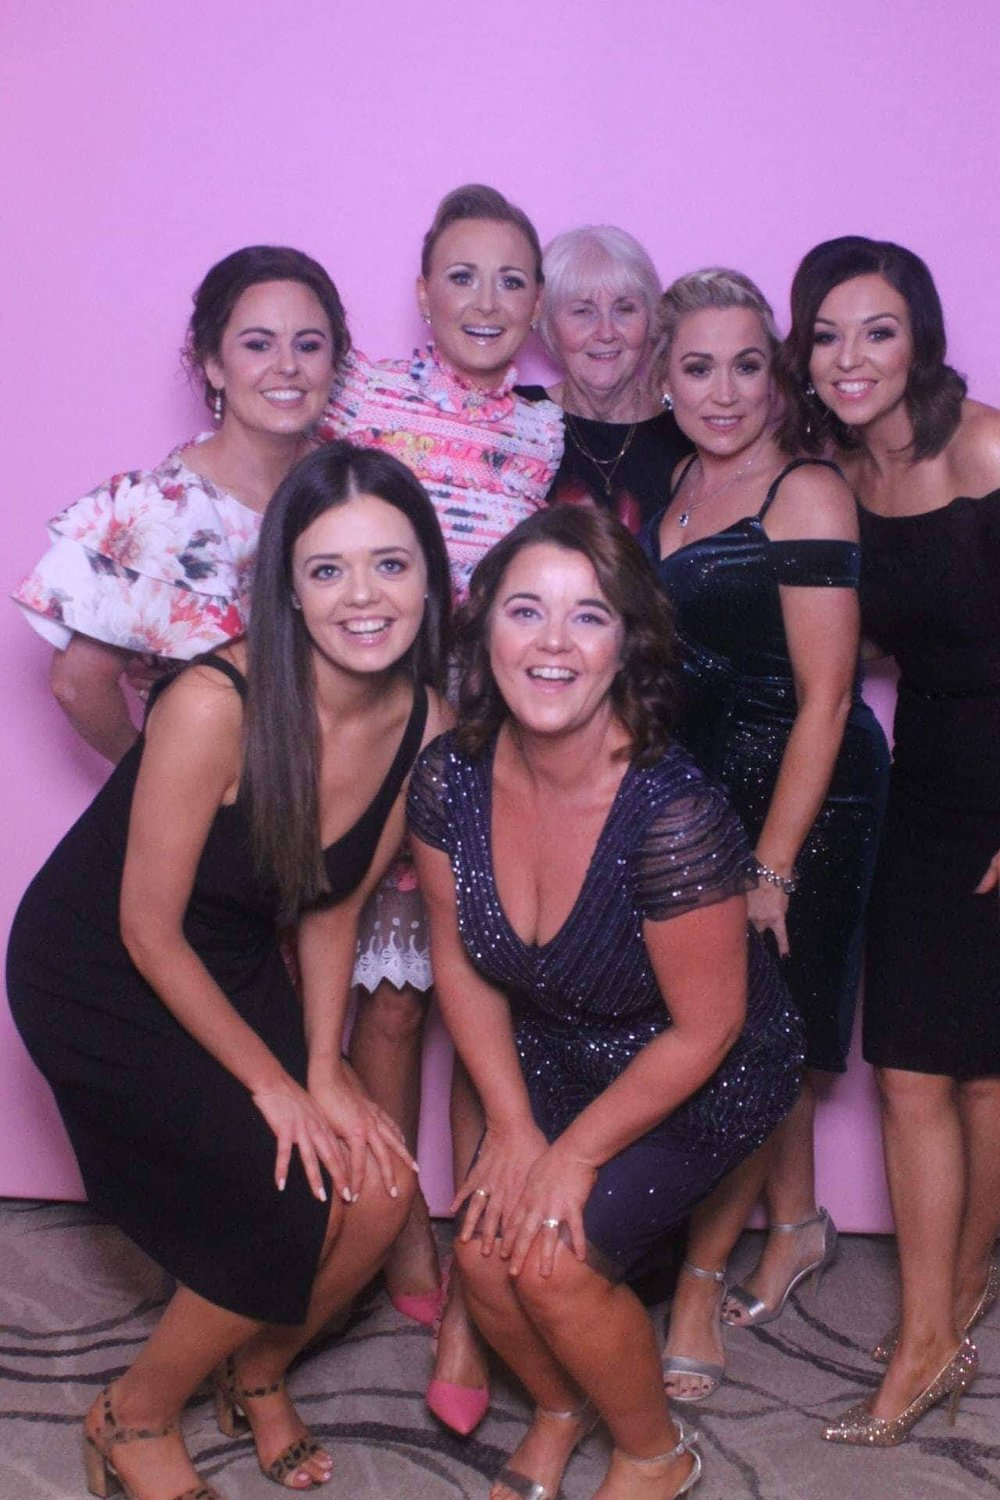 Team Awesome - Karen Daly, Linda McAleer, Keli Reel, Emma Quinn, Grainne Clarke, Susan McGuirk and Kathleen Kelly who between them have lost over 20 stone!!